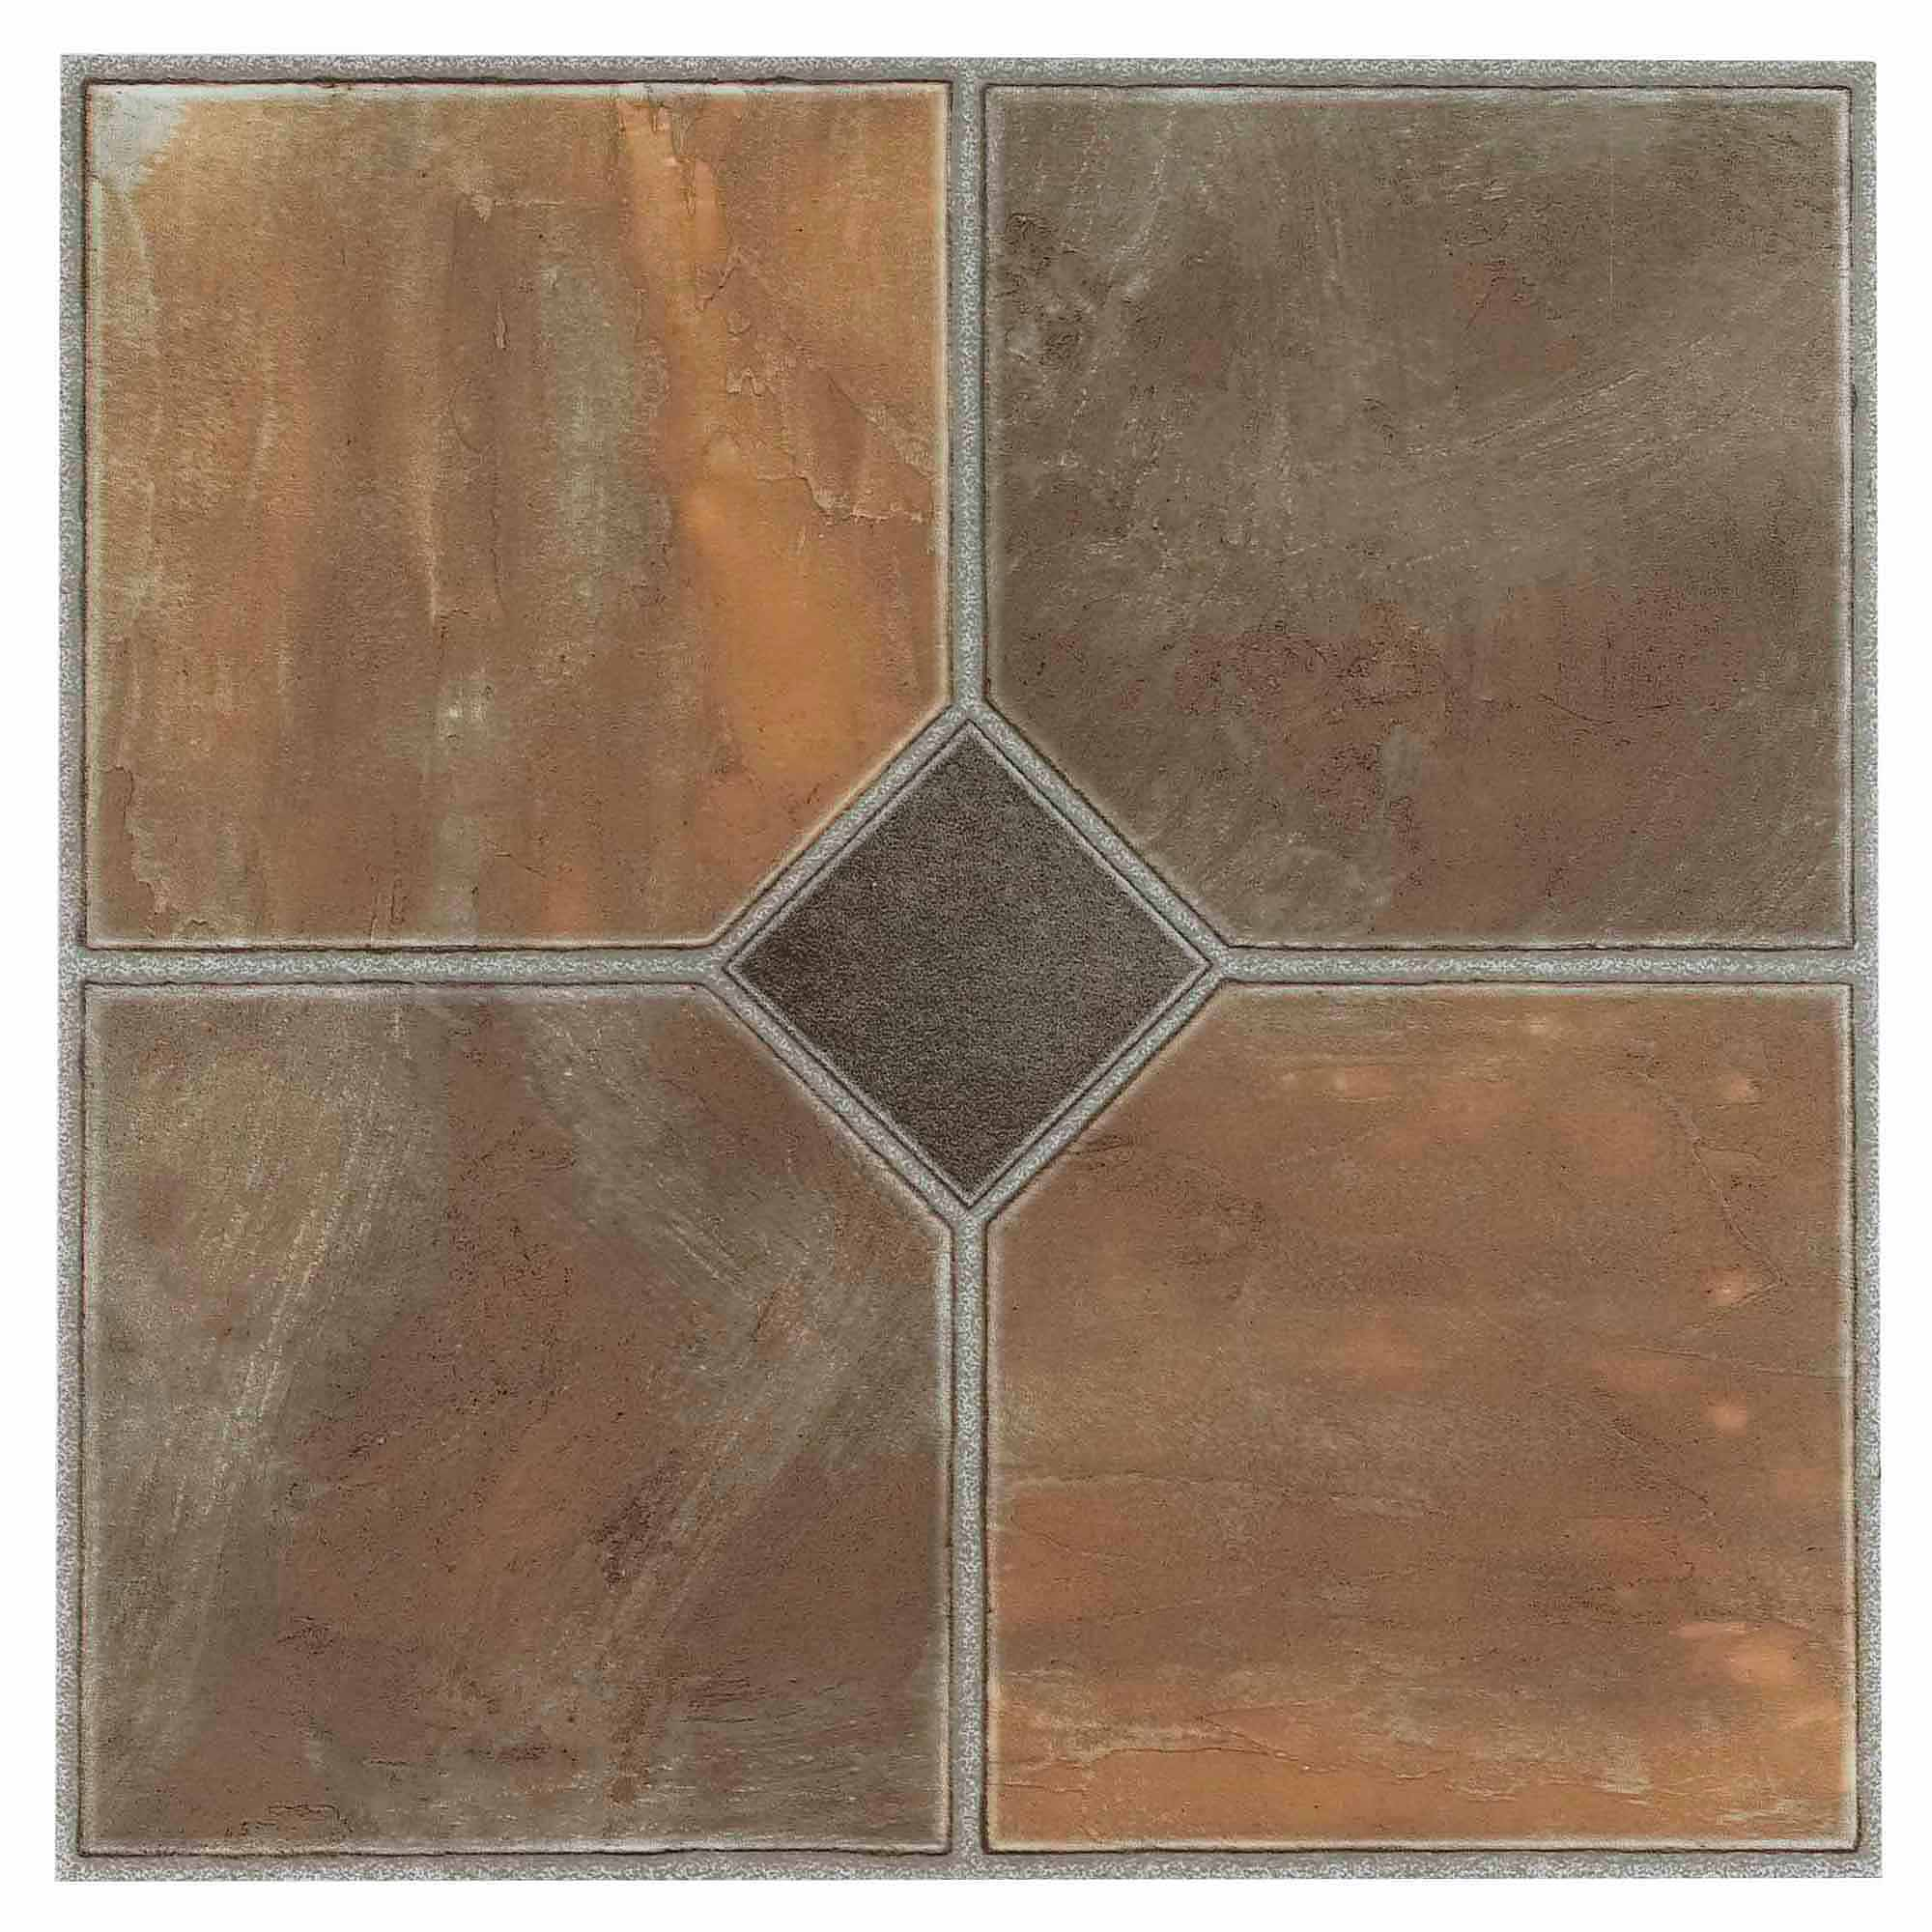 Self adhesive floor tiles nexus rustic slate 12x12 self adhesive vinyl floor tile 20 tiles20 sq dailygadgetfo Gallery